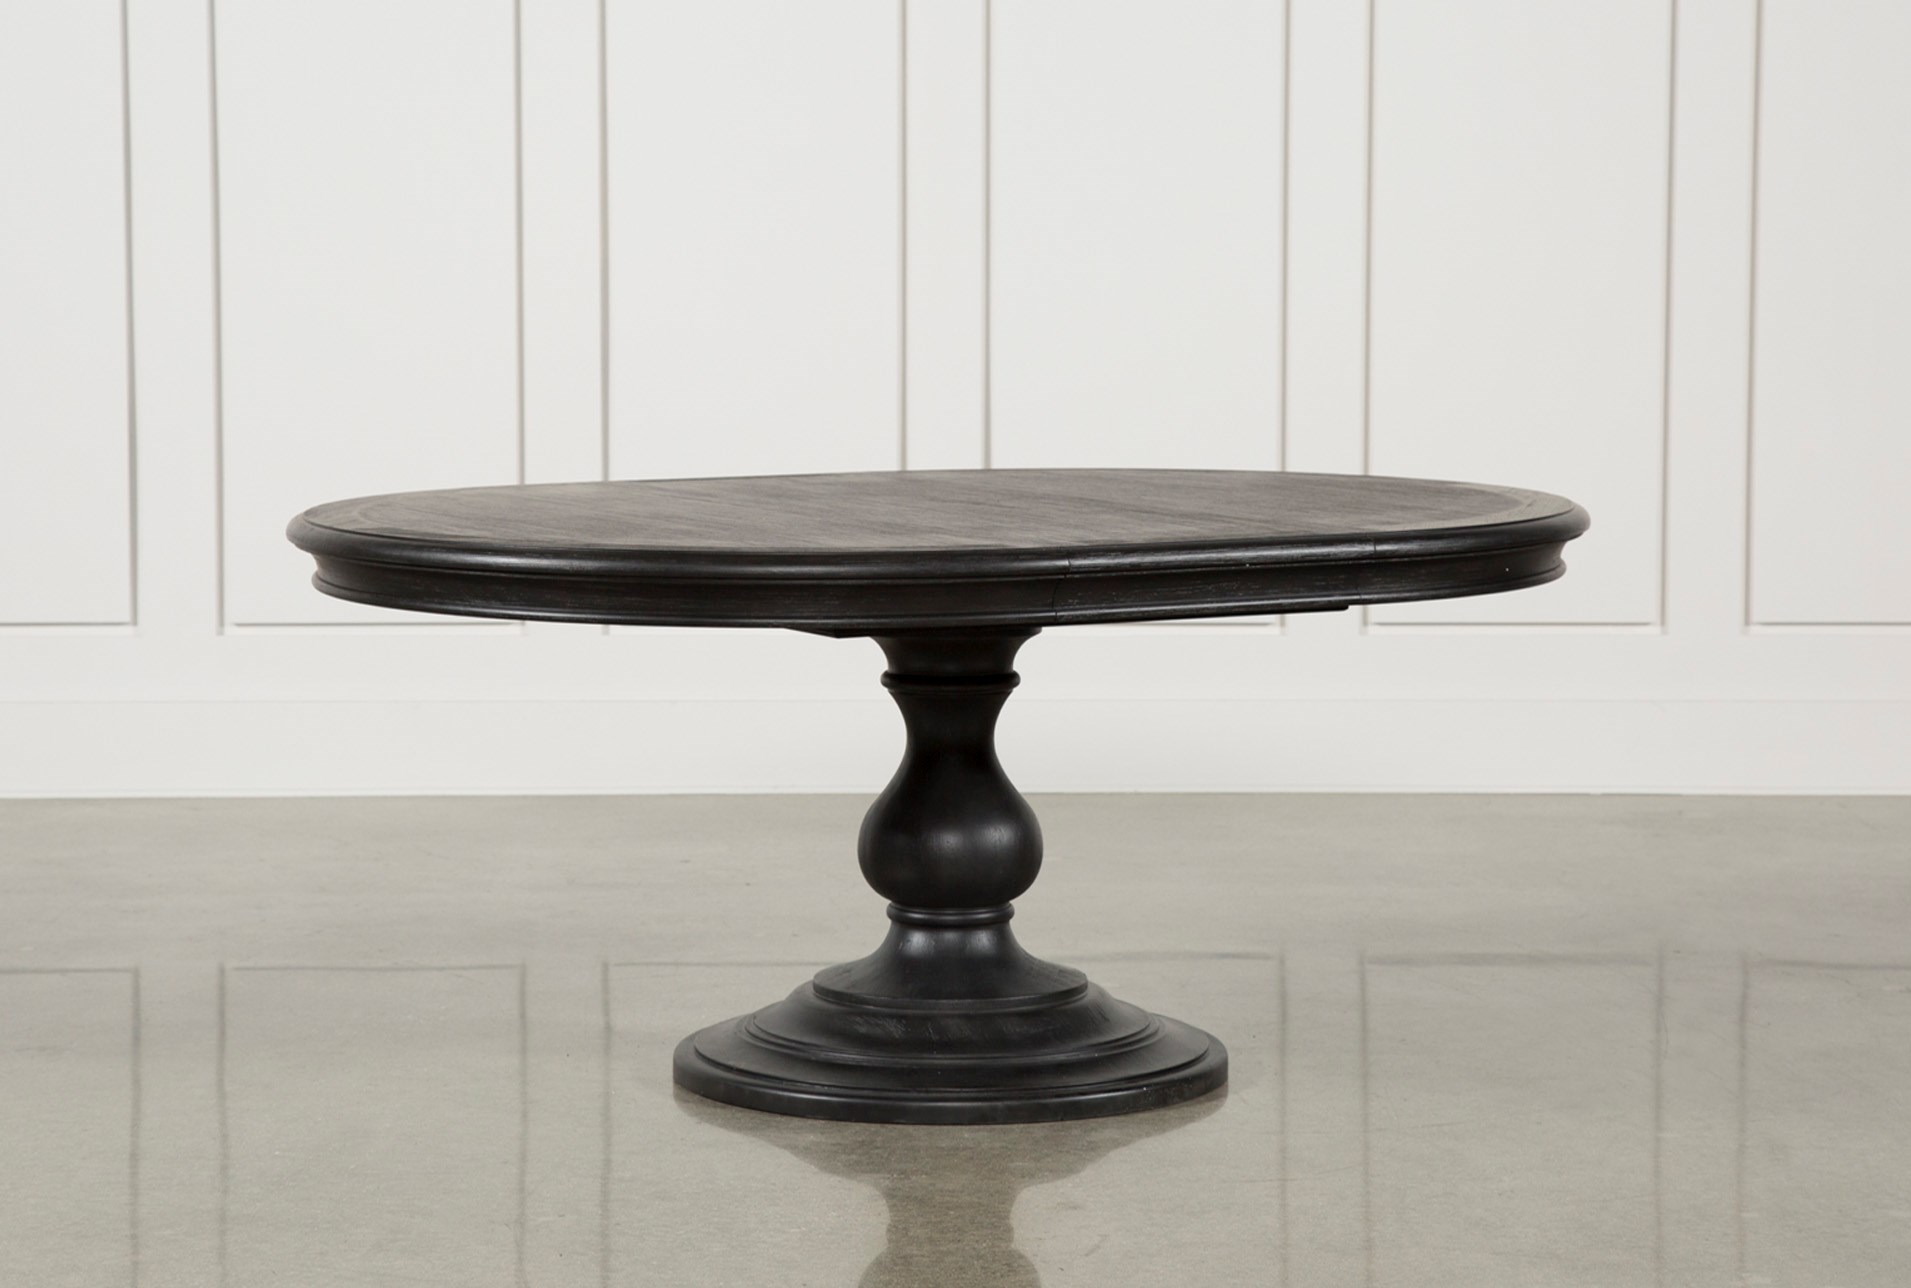 black round table. Caira Black Round Dining Table (Qty: 1) Has Been Successfully Added To Your Cart. V